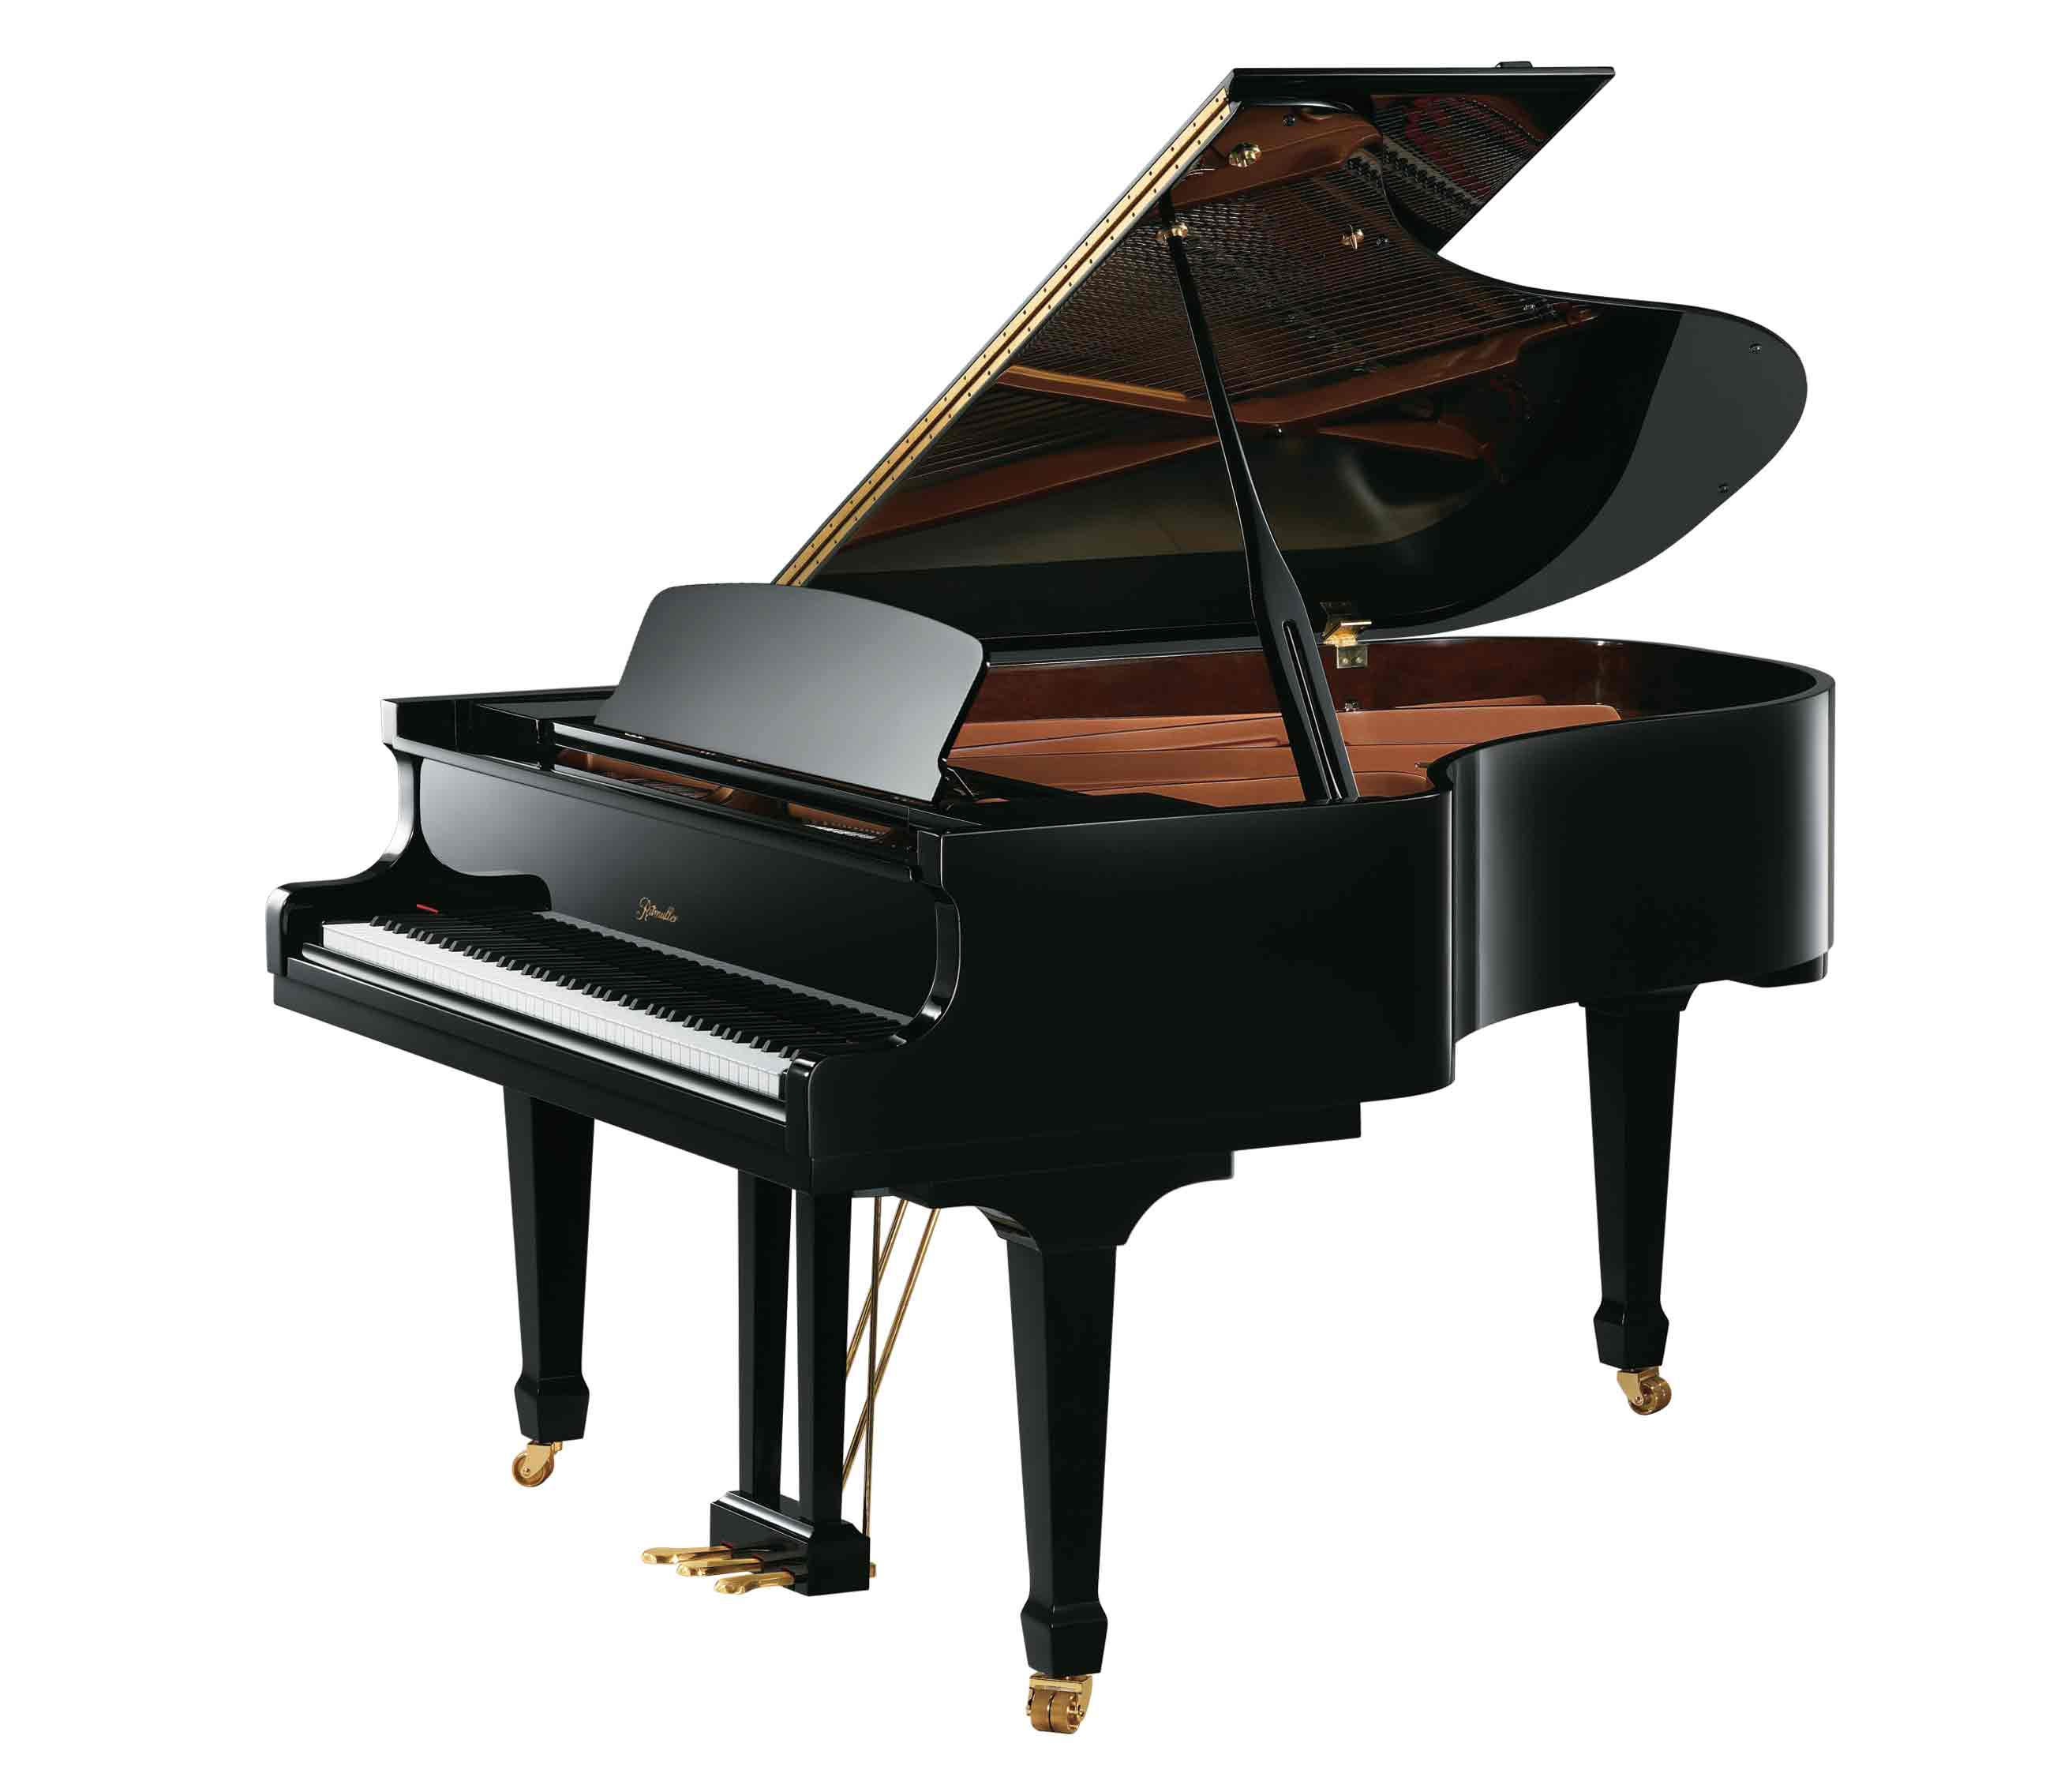 Ritmüller GH188R Parlor Grand Piano in Ebony Polish finish